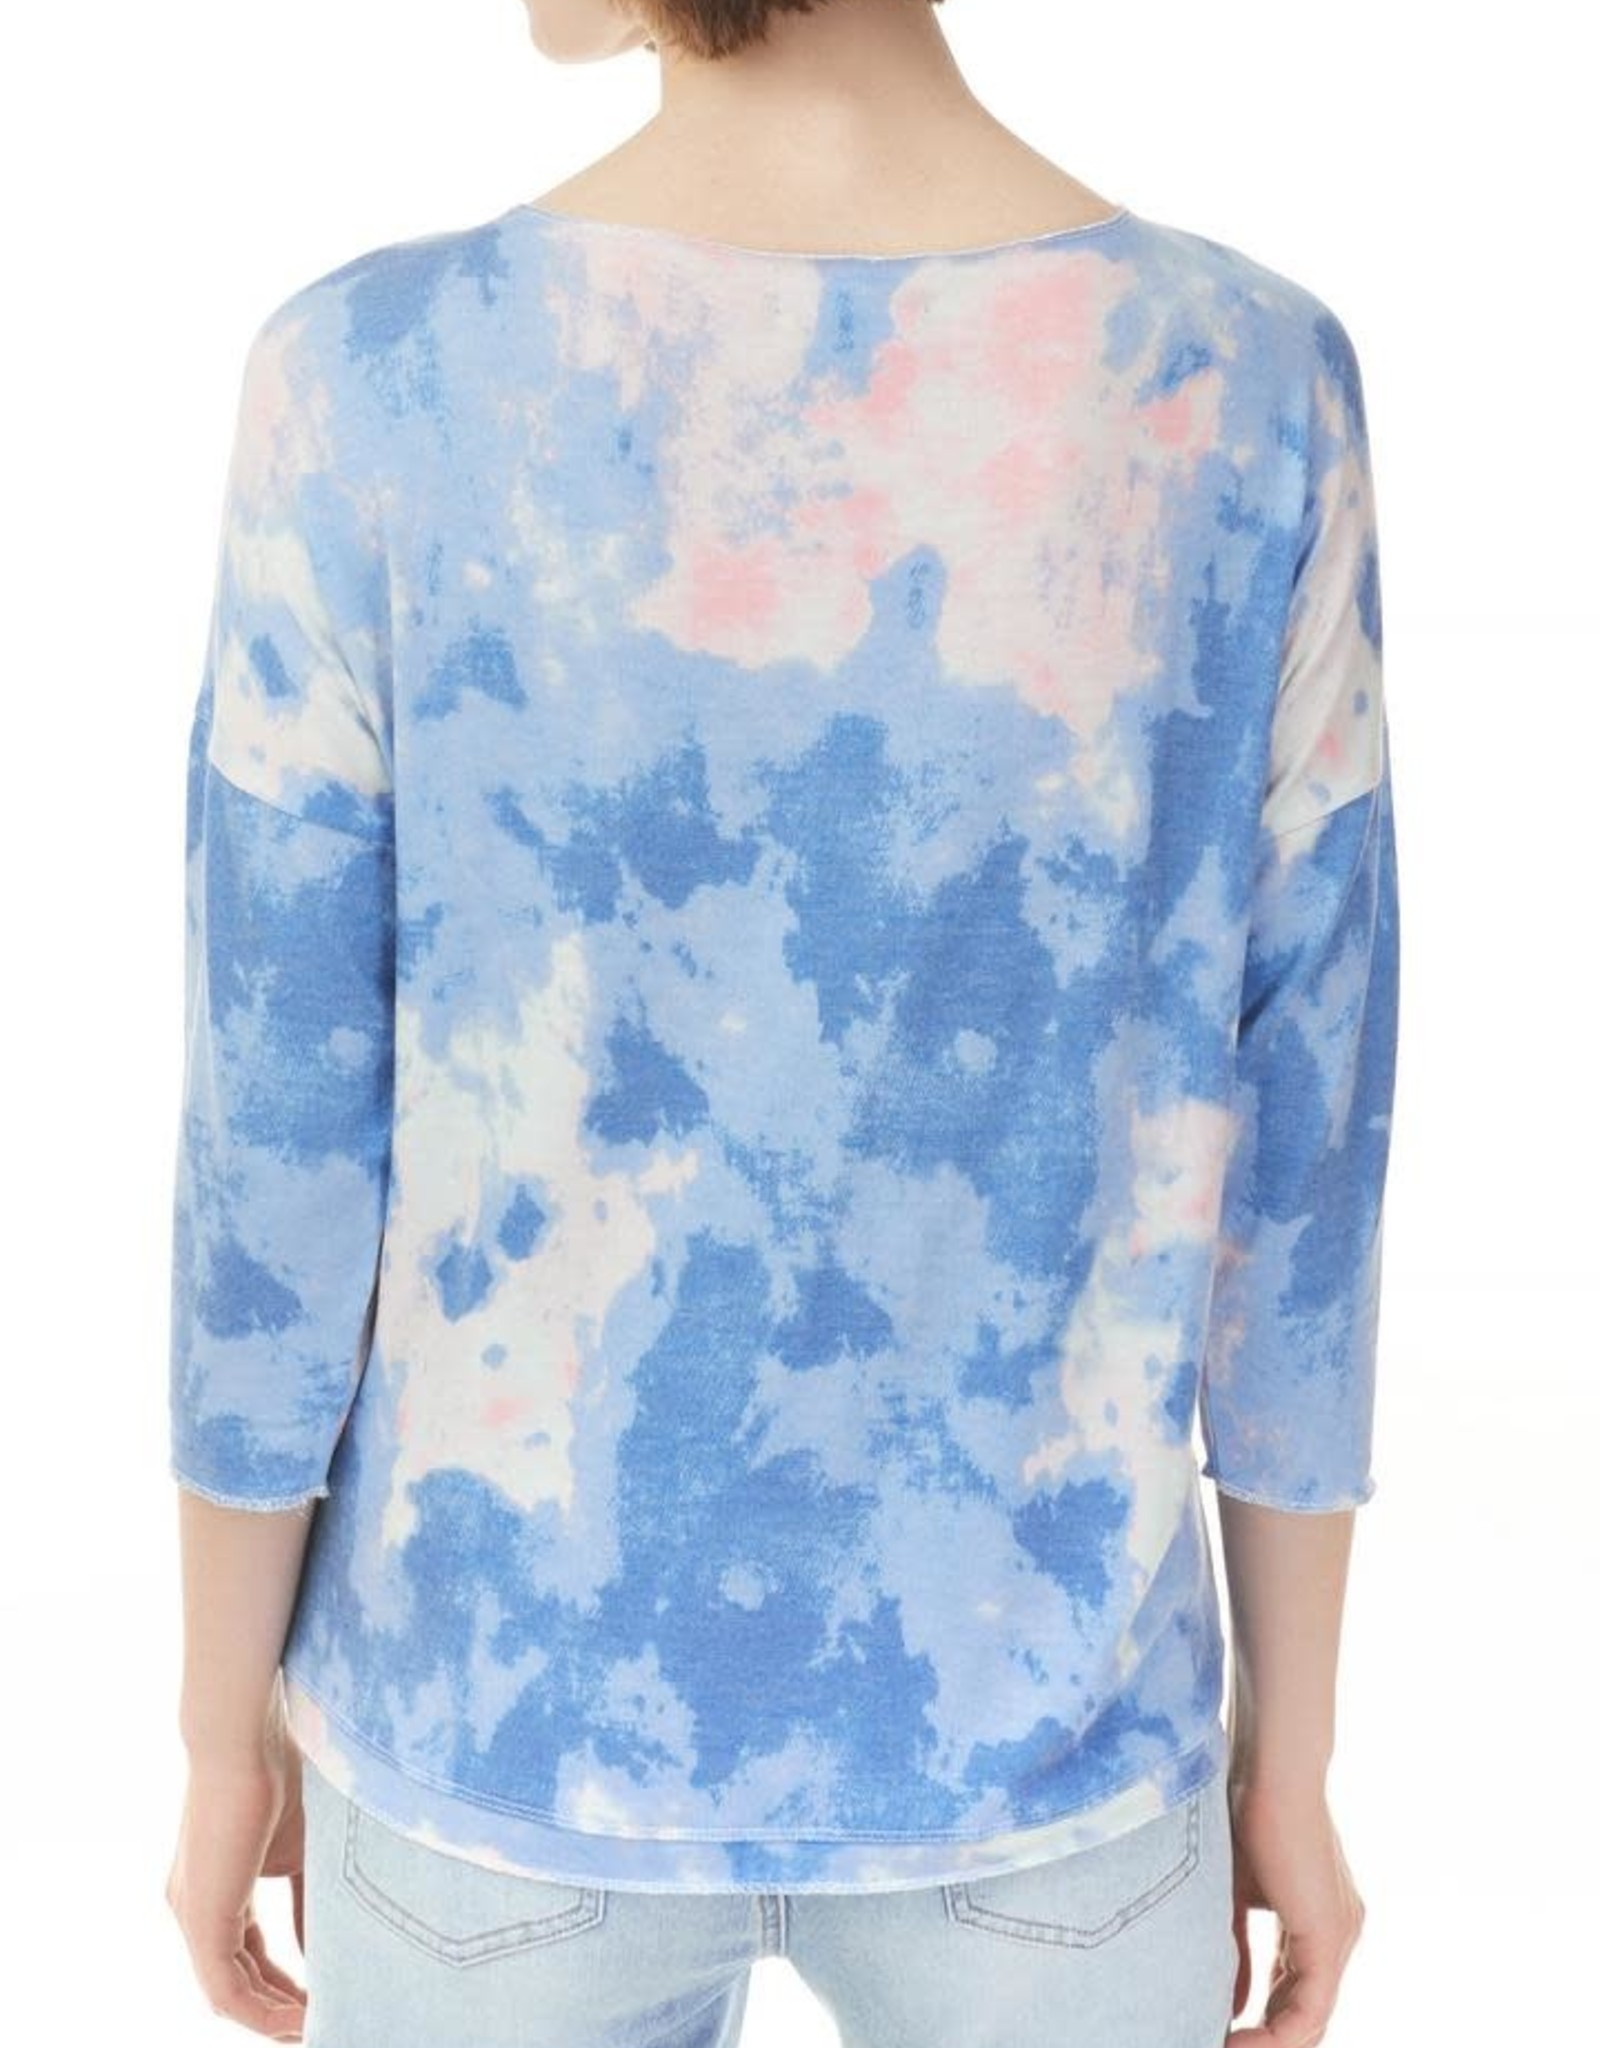 - Blue/Pink Cloud Printed 3/4 Sleeve Top